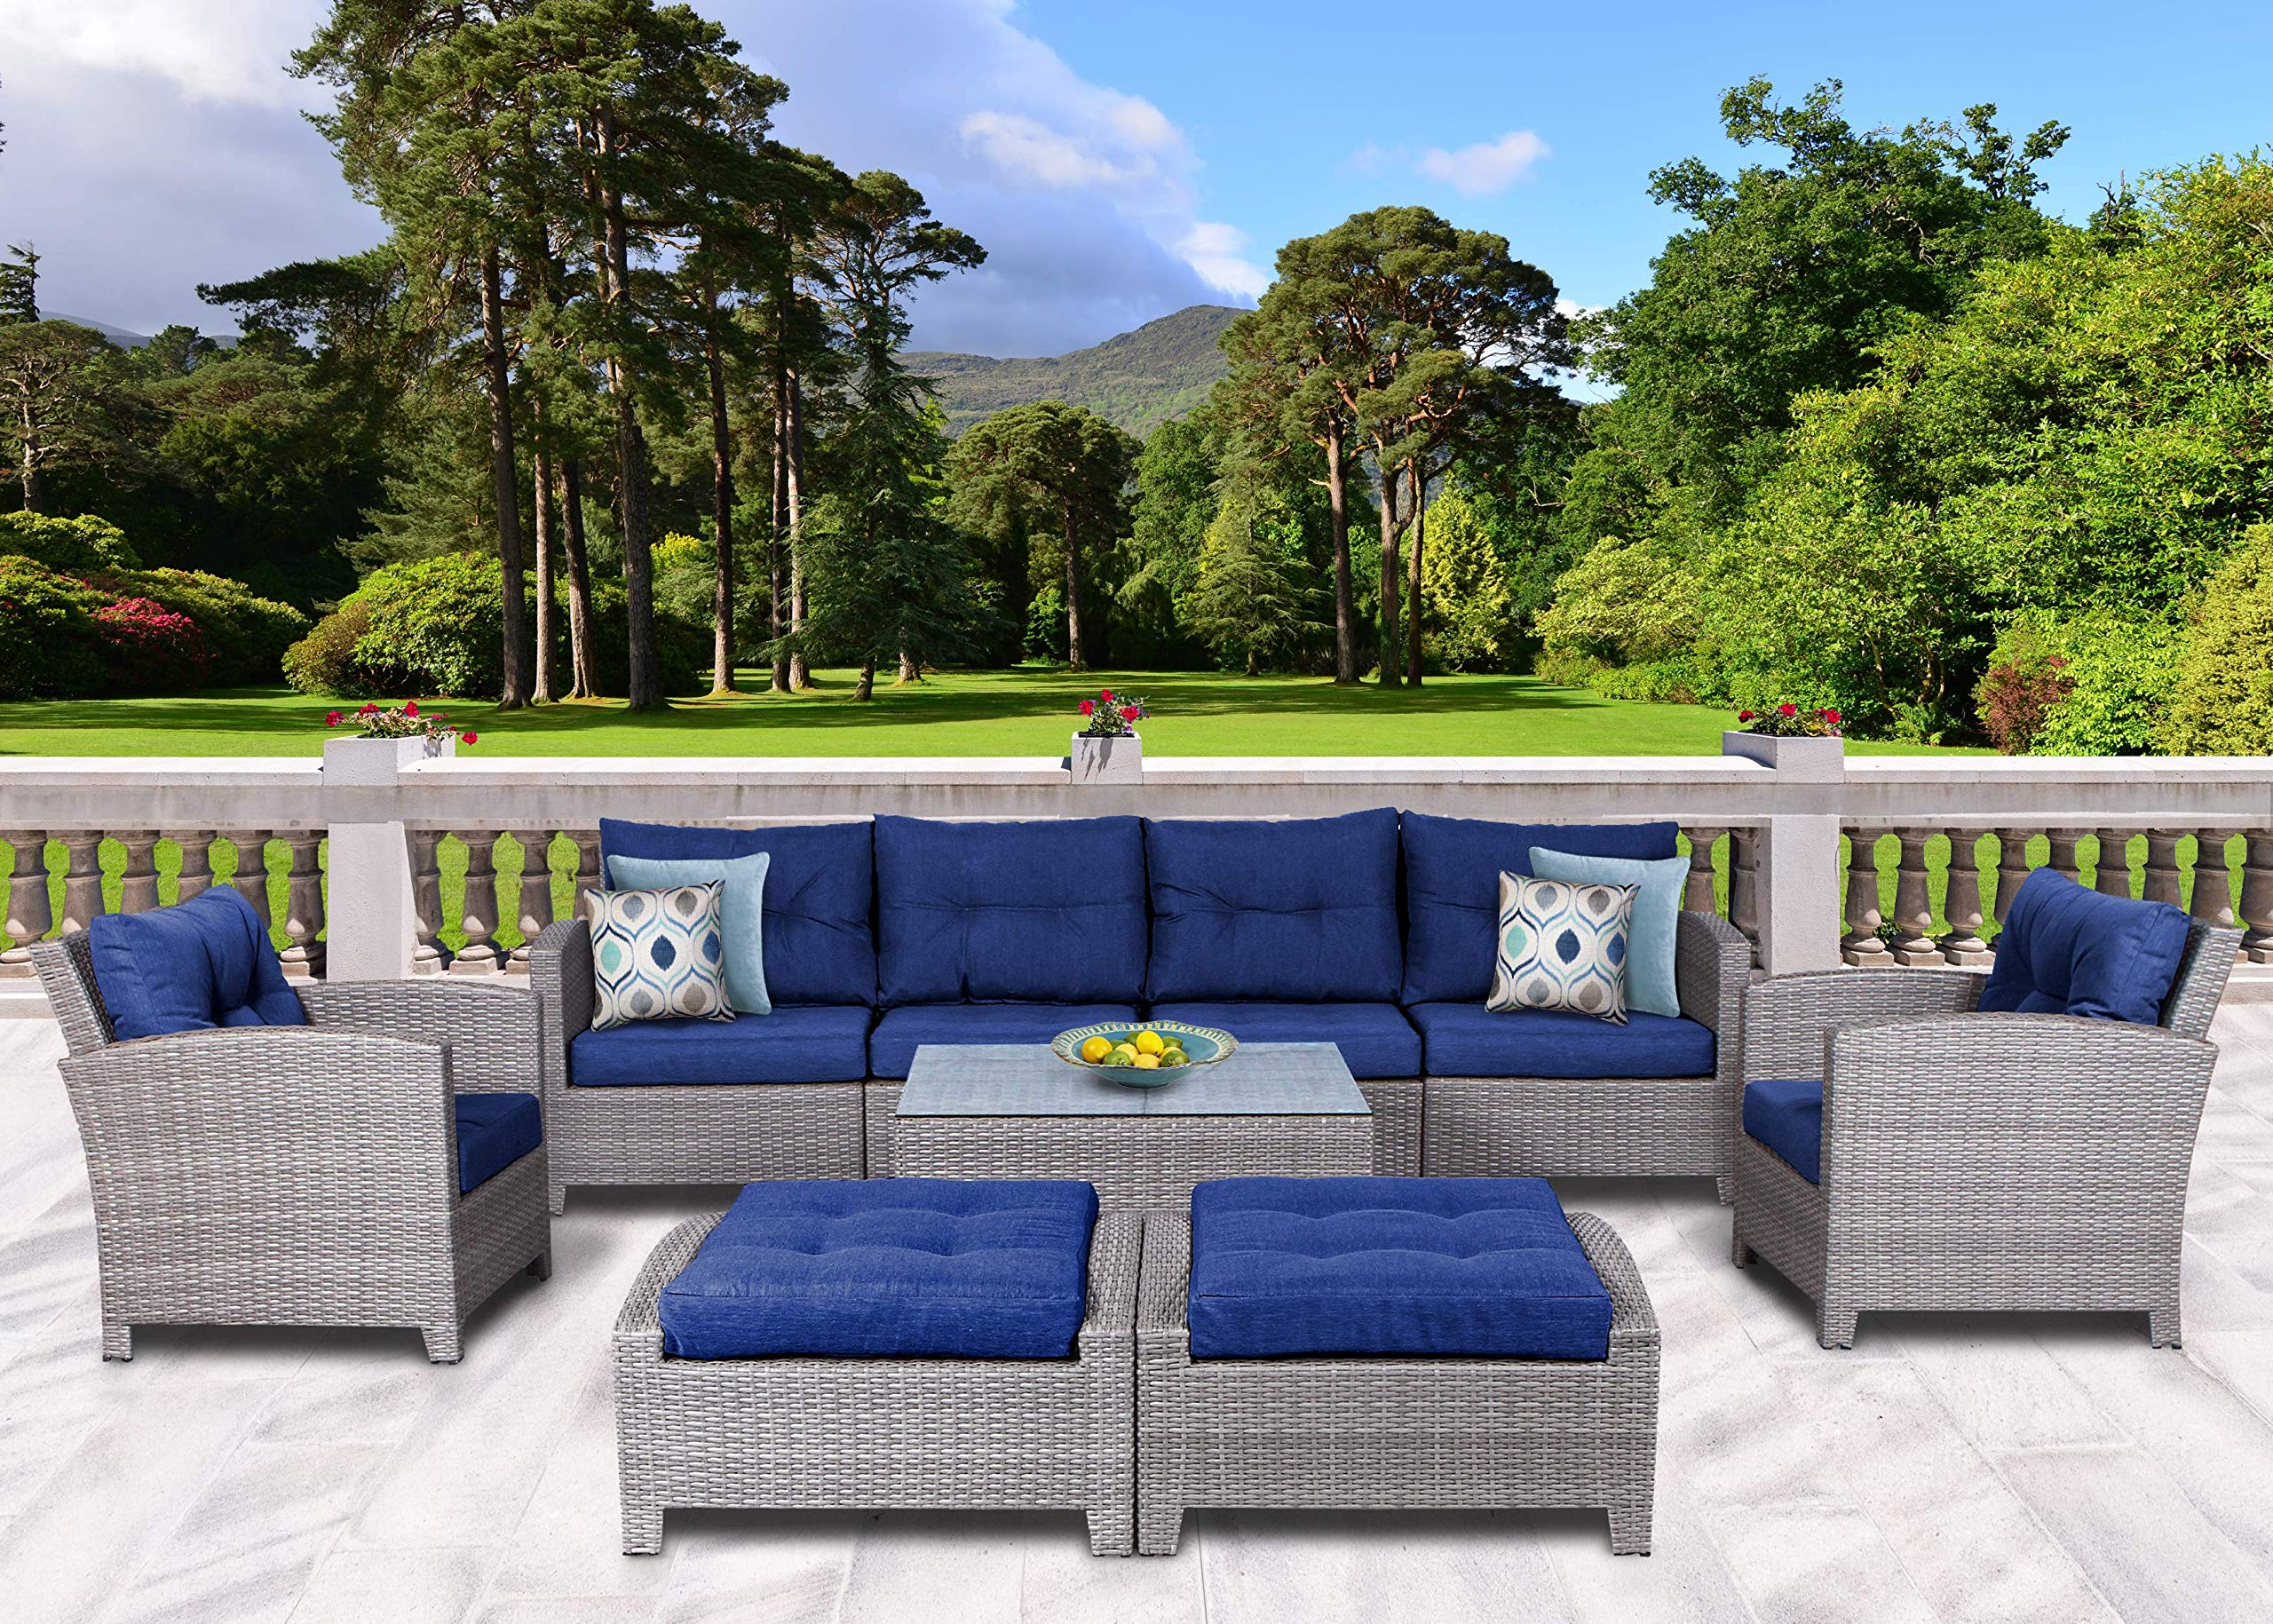 sunhaven resin wicker outdoor patio furniture set 9 piece conversation sectional premium all weather gray wicker rattan aluminum frame with deluxe